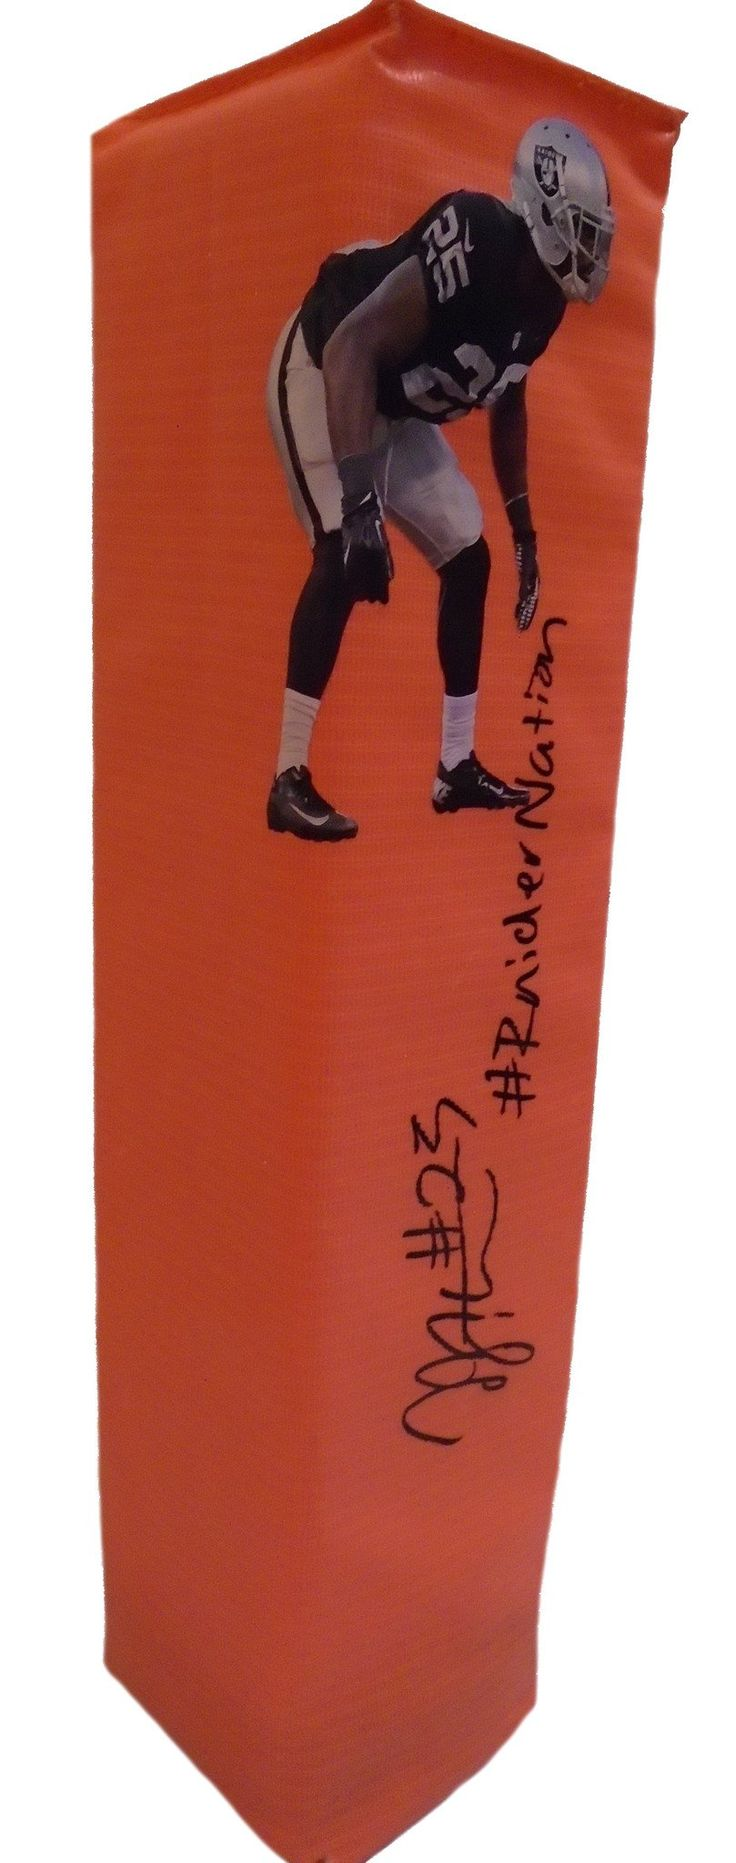 """D.J. Hayden Autographed Oakland Raiders Photo Full Size Football End Zone Touchdown. This is a brand-new custom D.J. Hayden signed Oakland Raidersphotofull sizefootball end zone pylon featuring """"#RaiderNation"""" inscription! This pylon measures 4inches (Width) X 4inches (Length) X 18inches (Height).D.J.signed the pylonin black sharpie.Check out the photo of D.J.signing for us. ** Proof photo is included for free with purchase. Please click on images to enlarge. Please browse our…"""